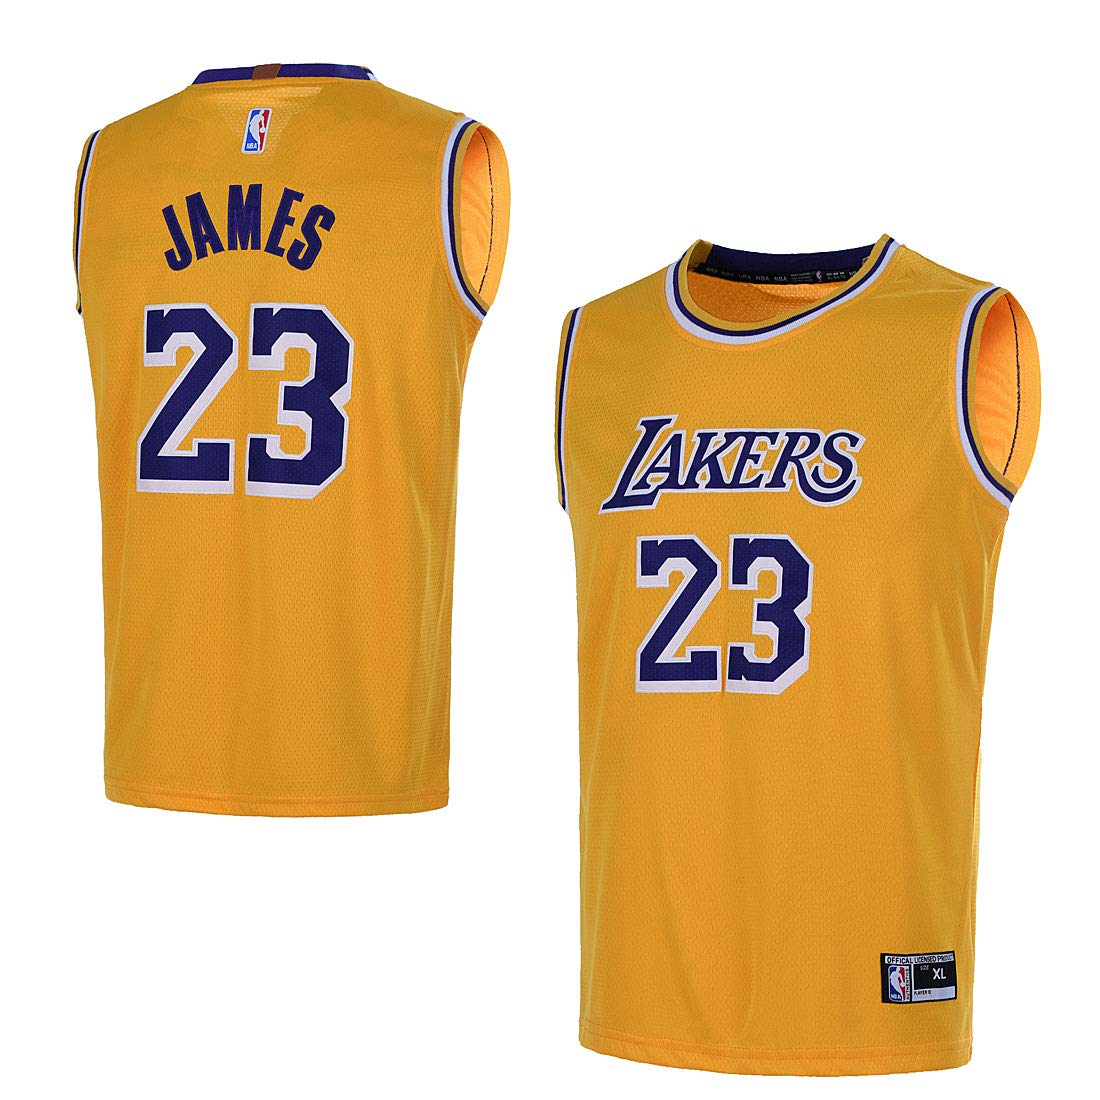 new style fb1b5 41549 Outerstuff Youth 8-20 Los Angeles Lakers #23 LeBron James Kids Jersey